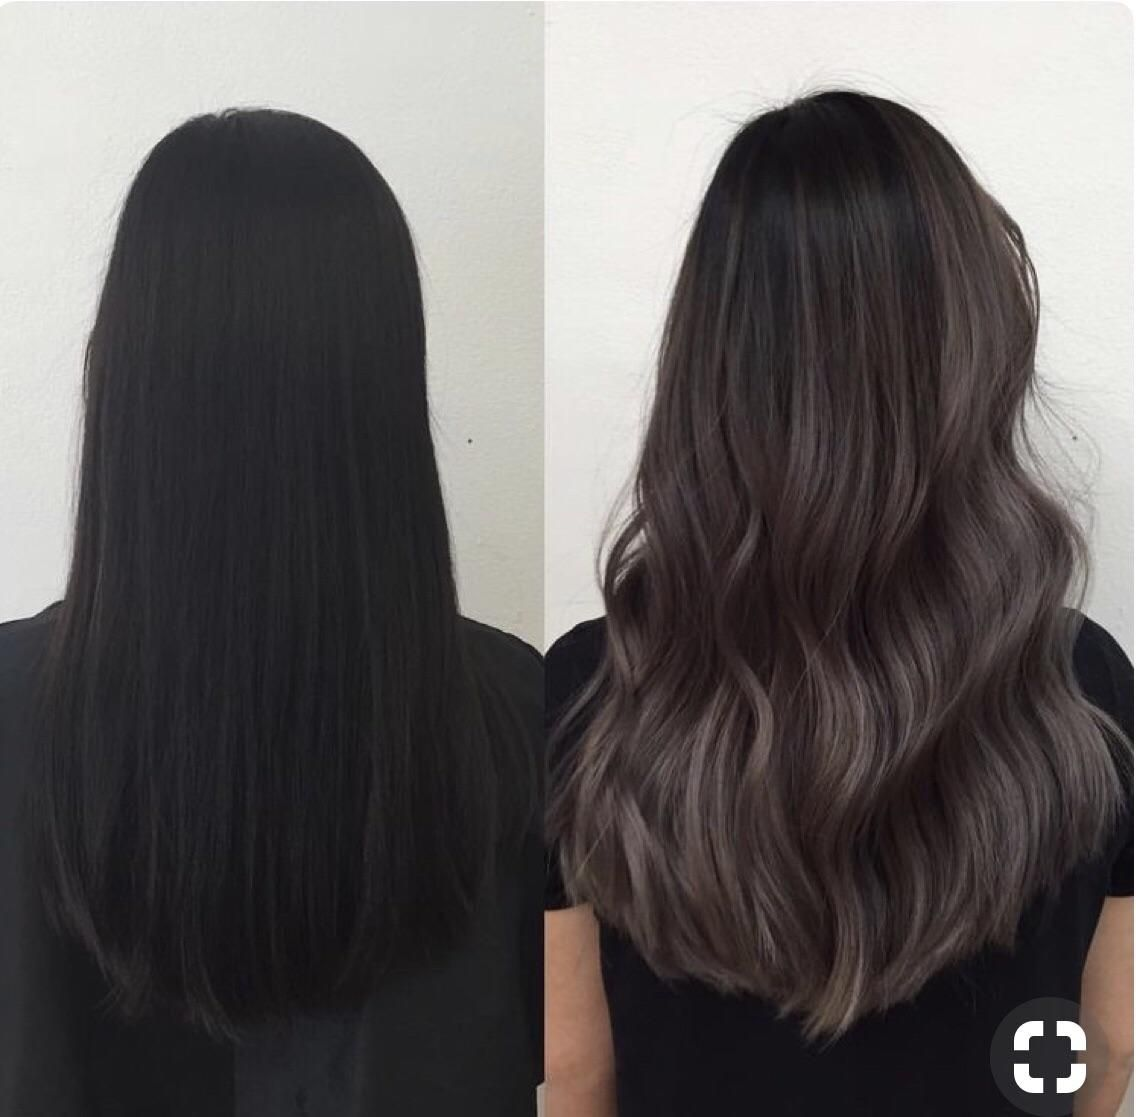 Getting bored with hair & has questions! i want to